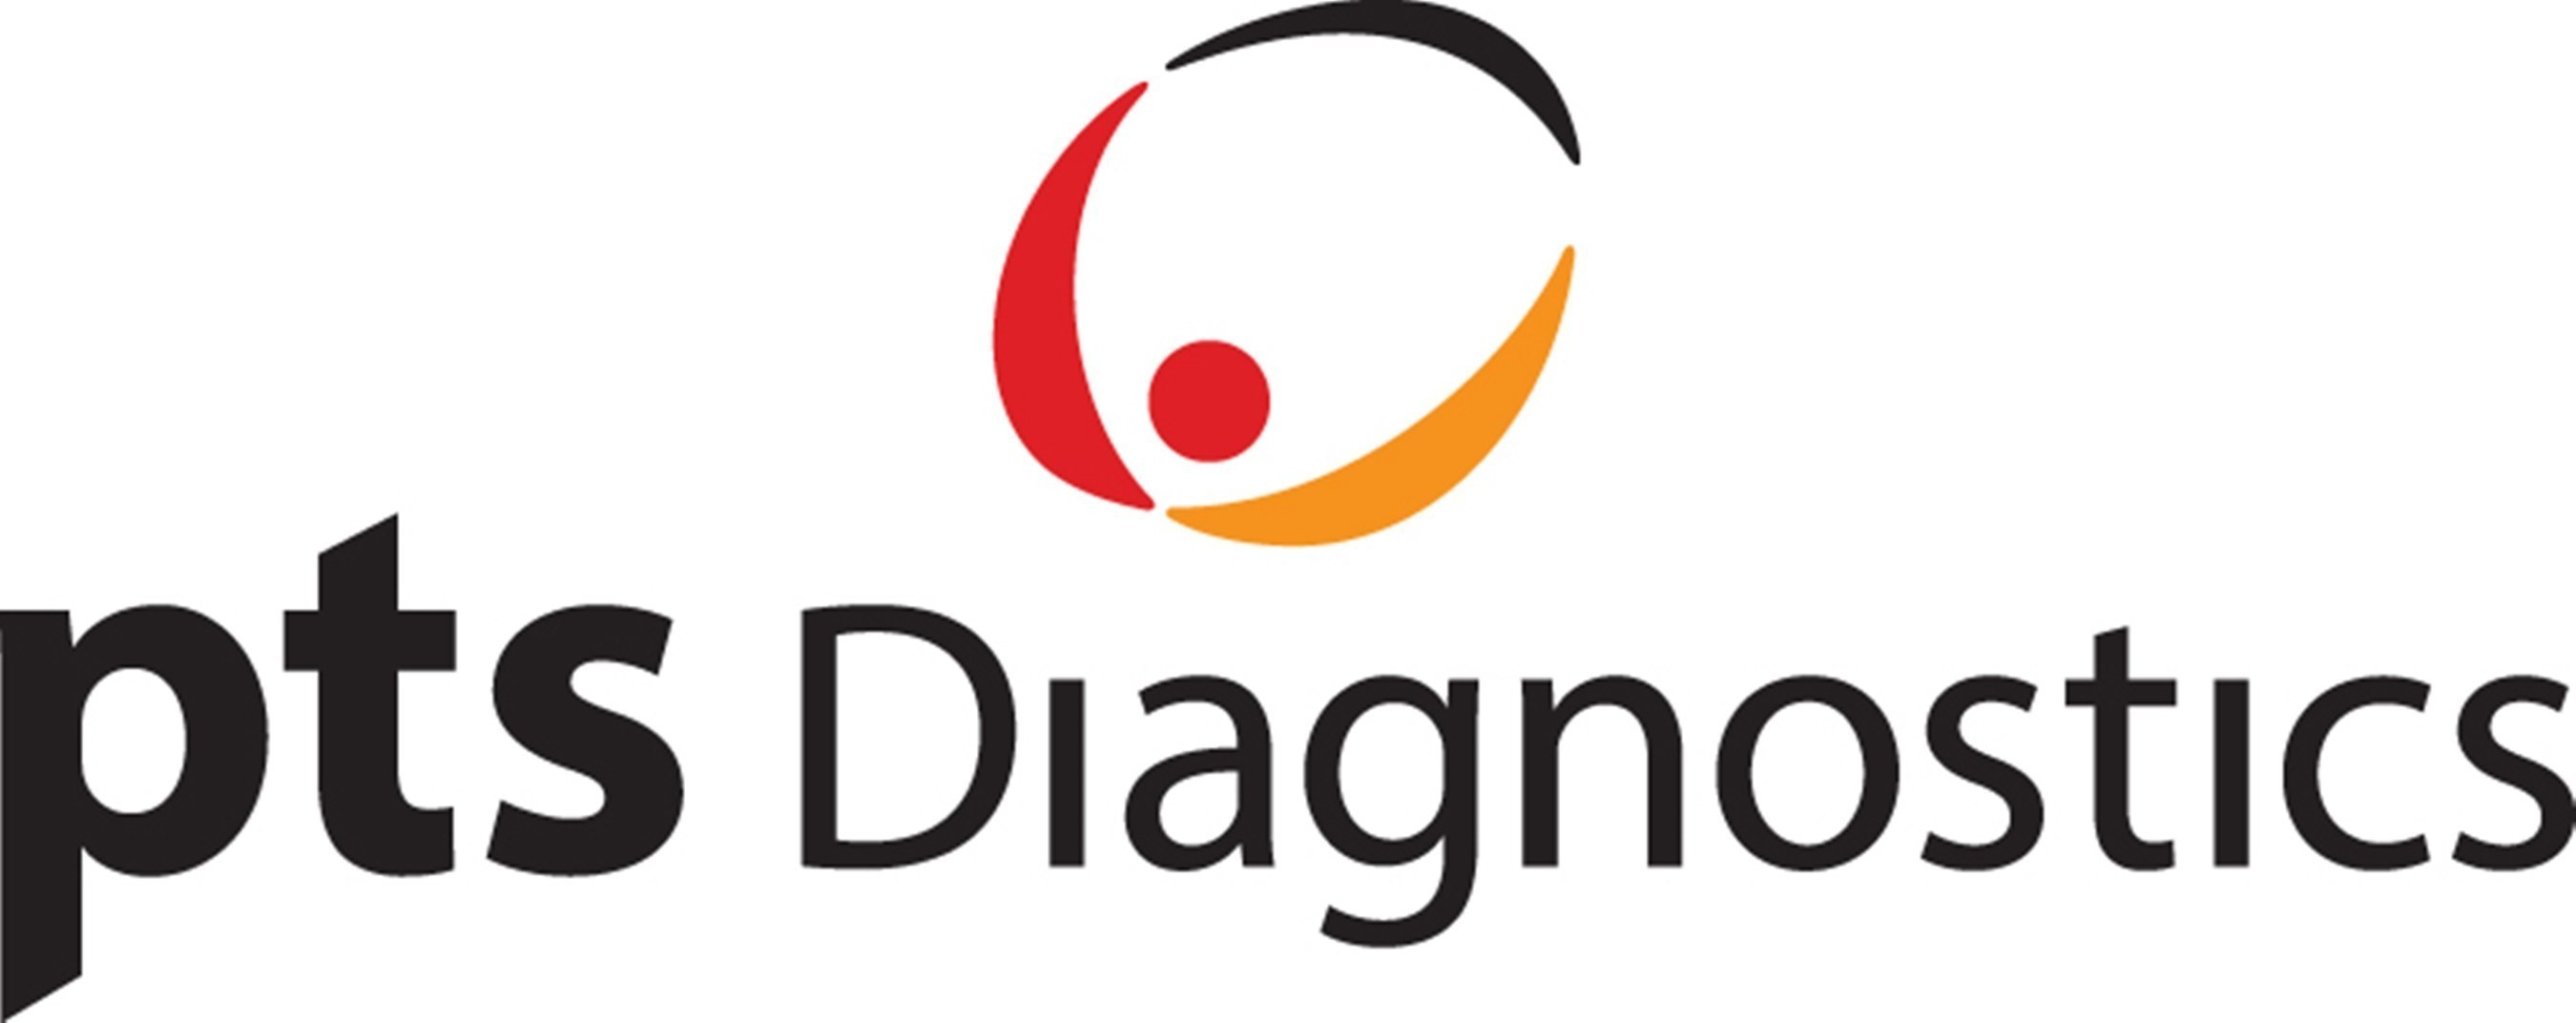 PTS Diagnostics logo